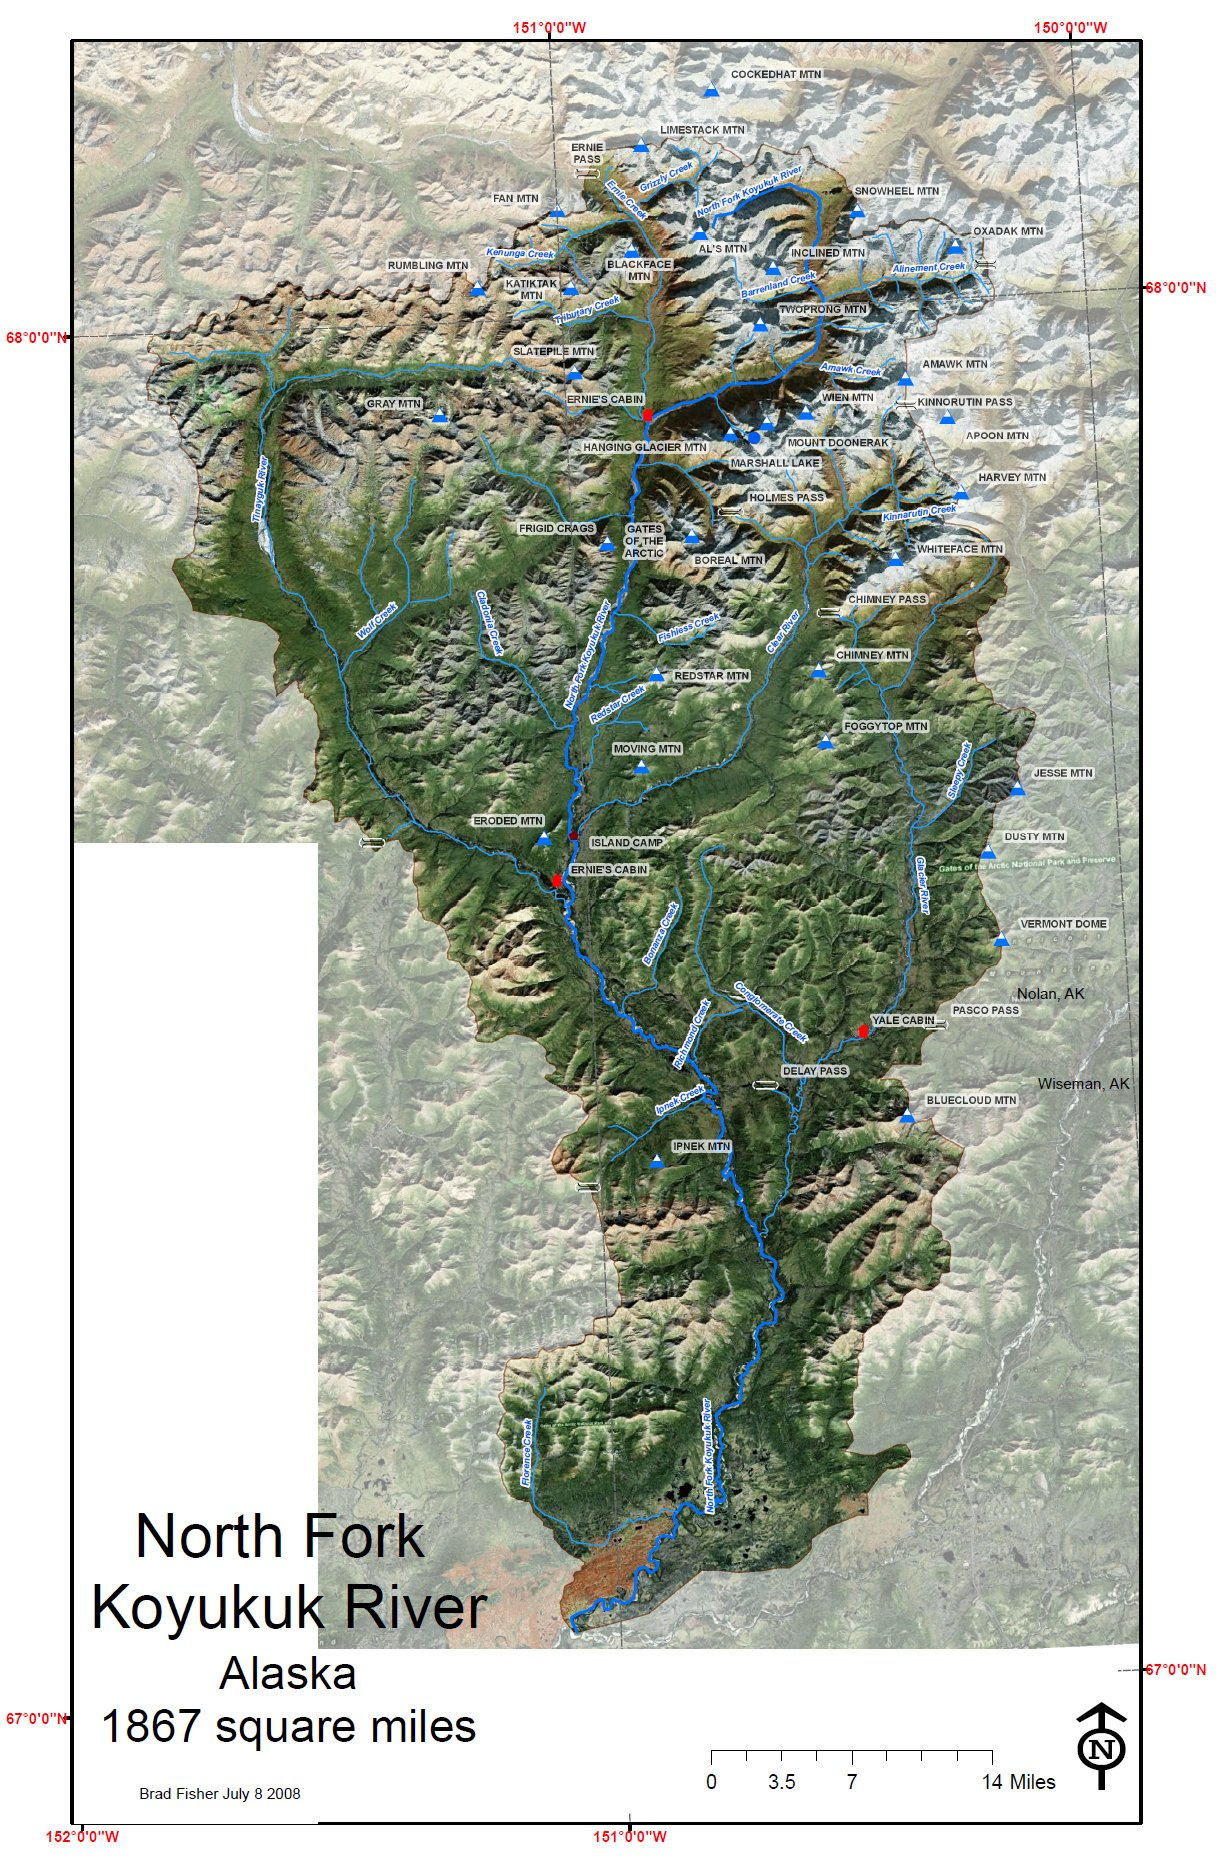 North Fork Koyukuk Watershed  Alaska Map  Wiseman Alaska